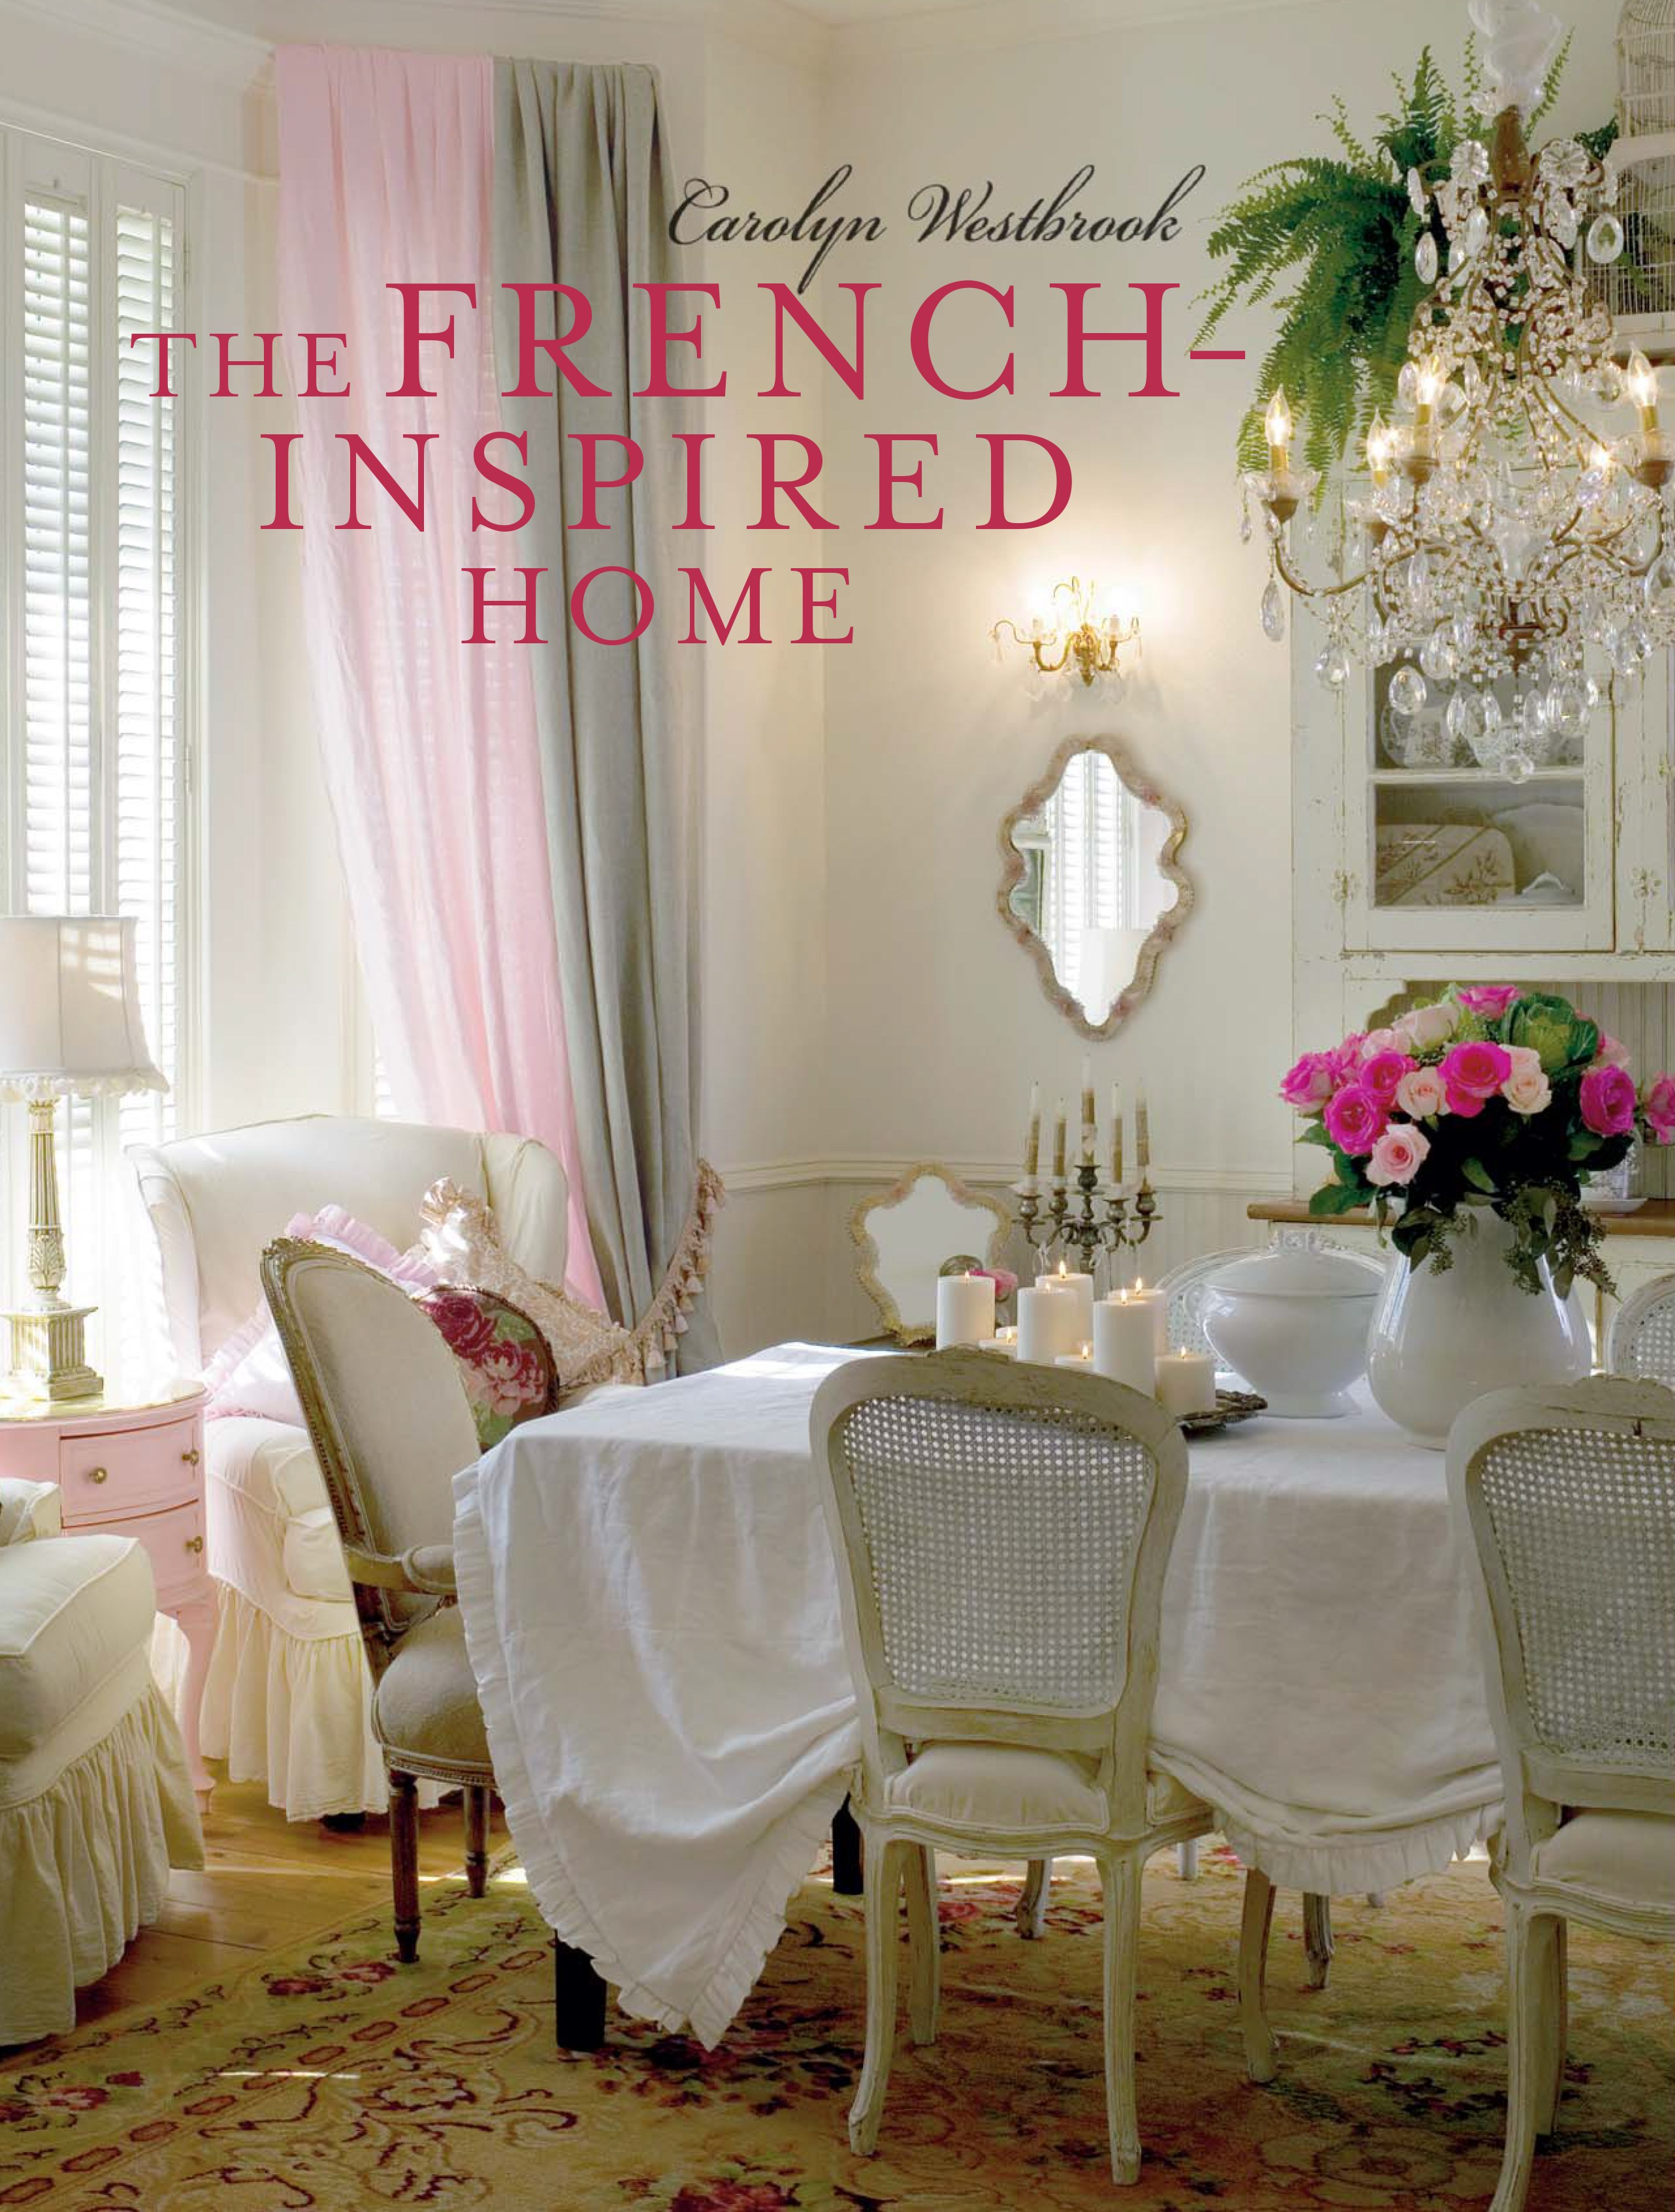 Capa-do-livro-The-French-Inspired-Home-Carolyn-Westbrook